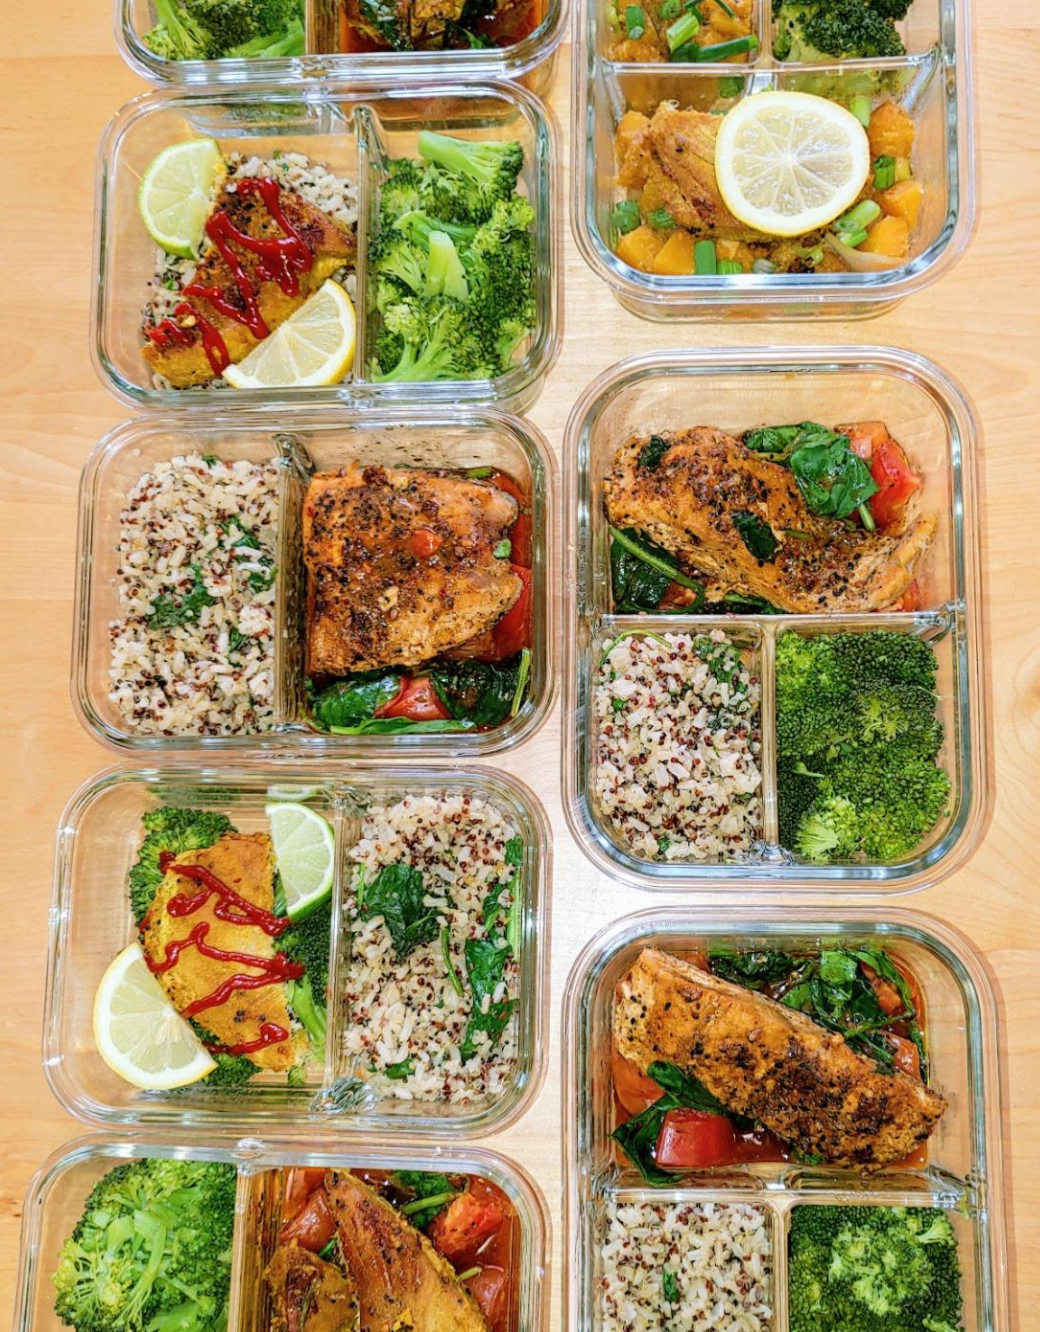 reviewer photo showing their glass containers filled with rice, broccoli and chicken